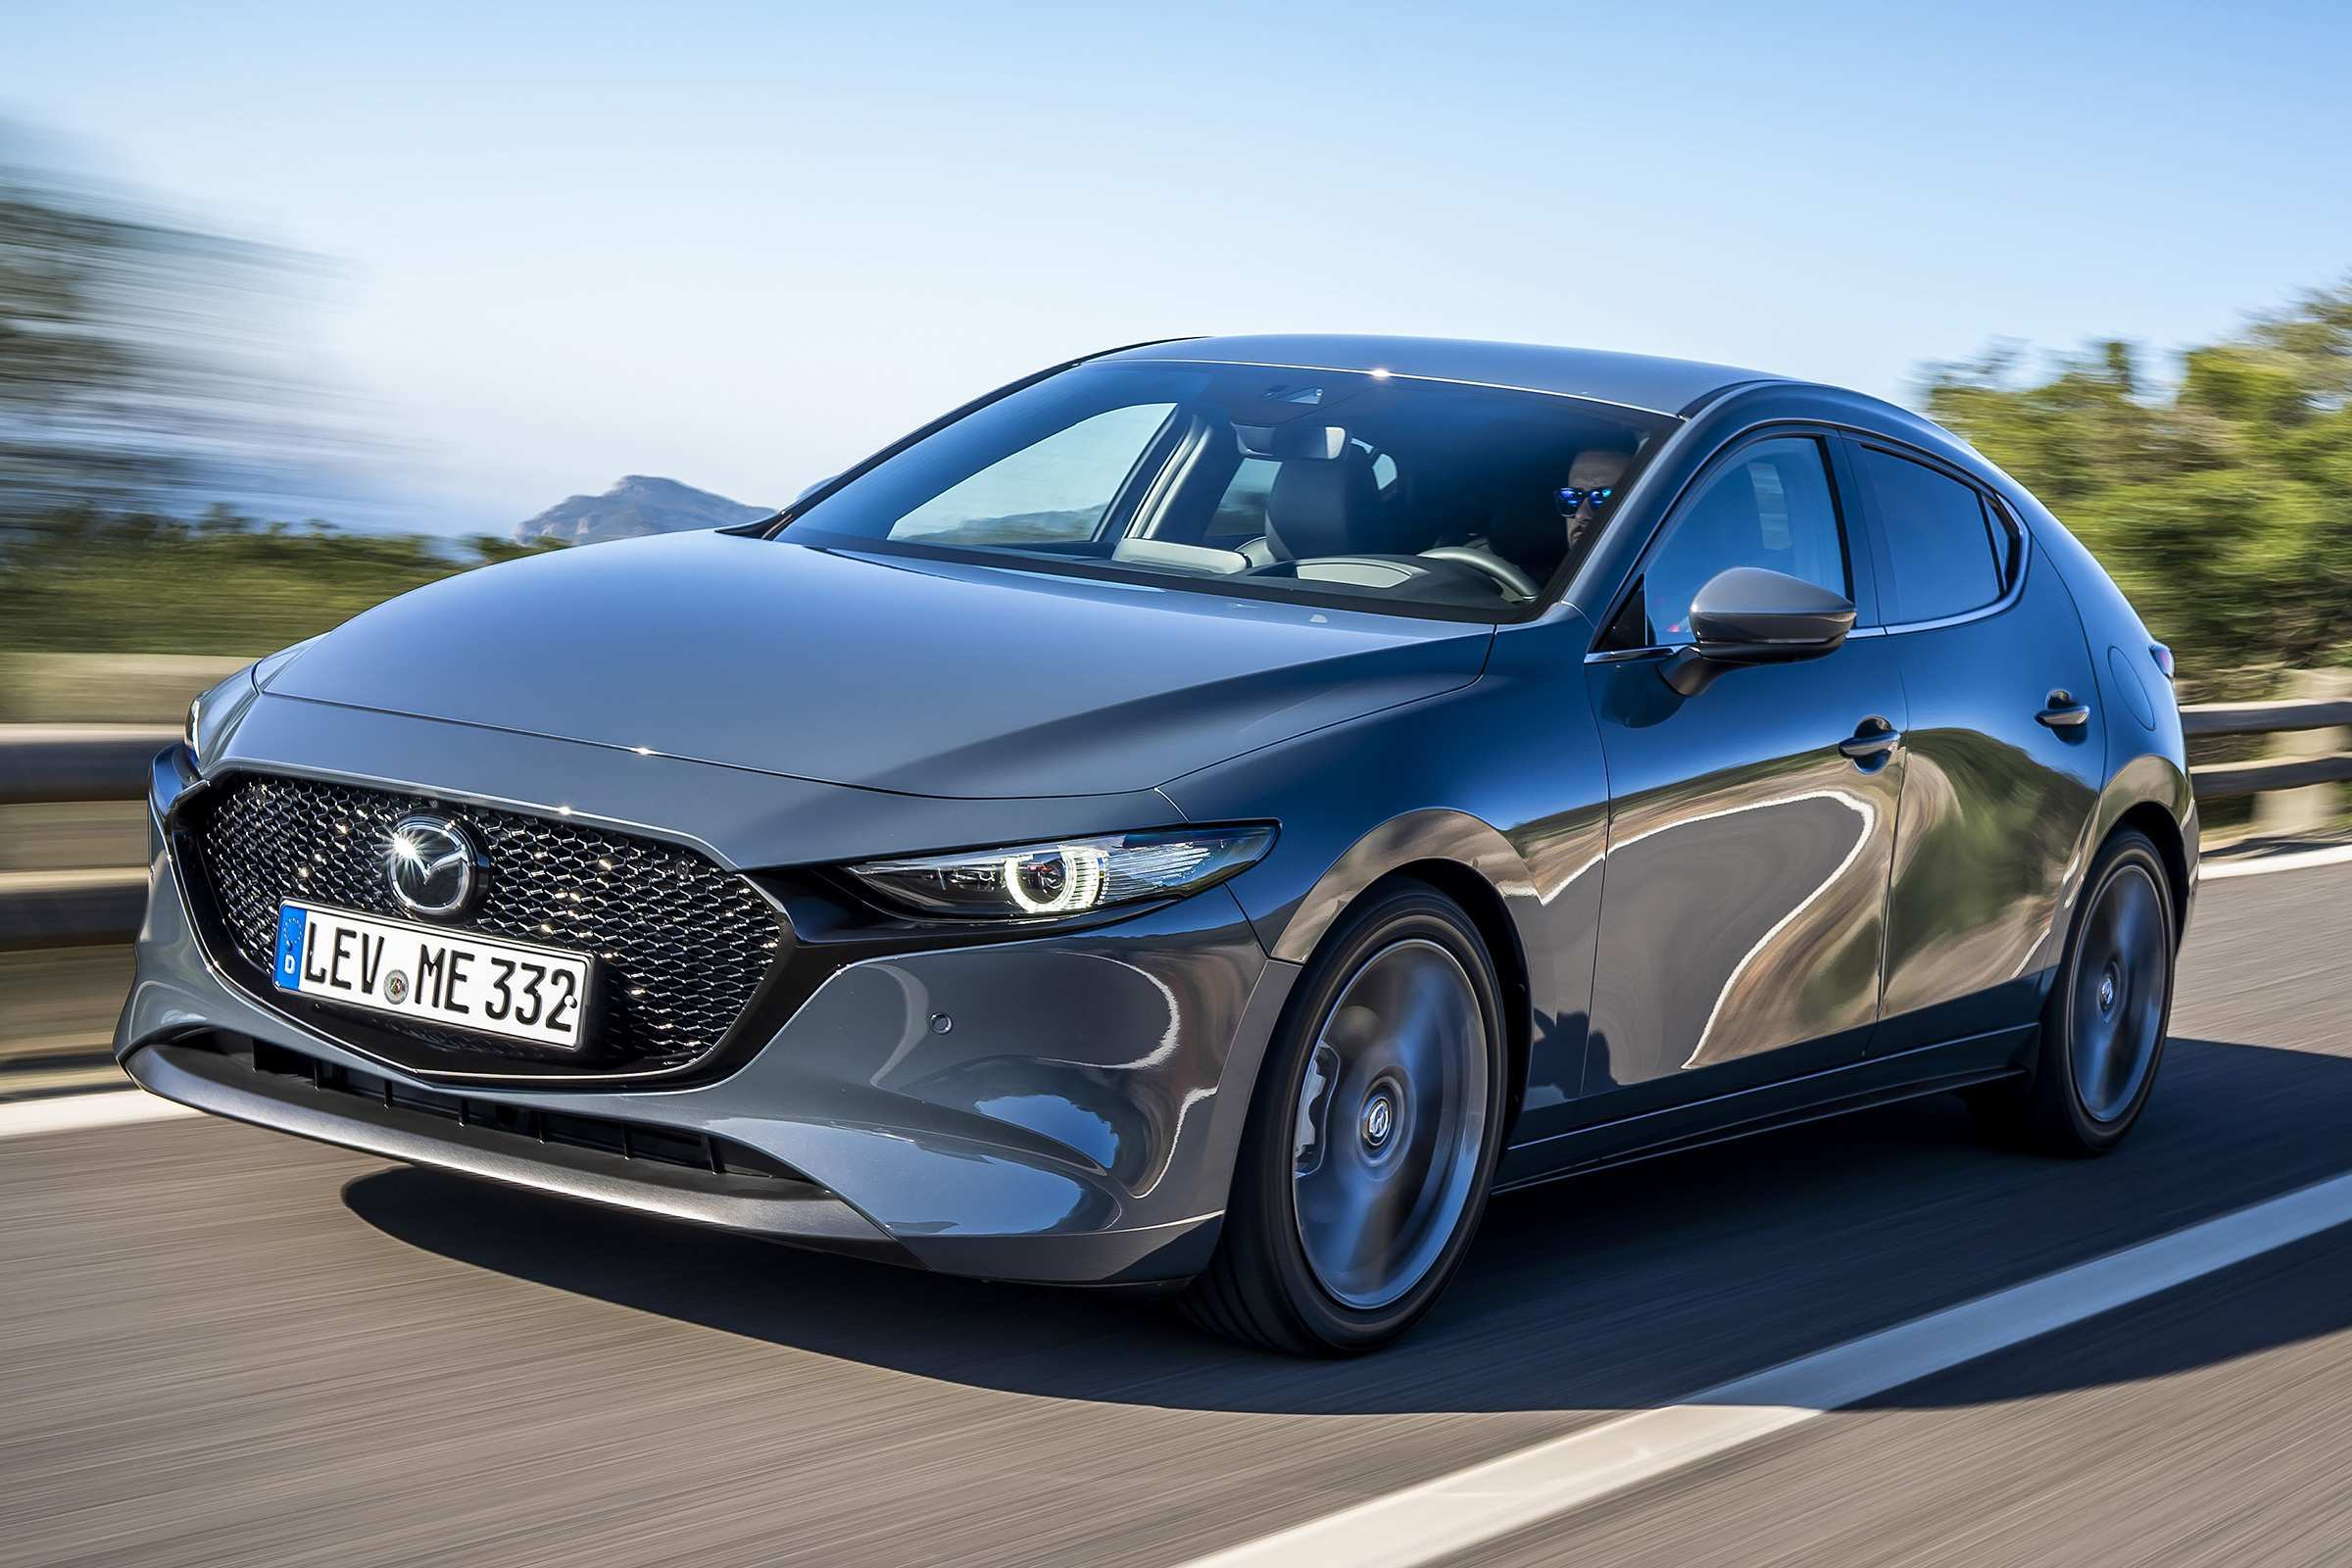 78 The New Mazda Cars For 2019 Review Review by New Mazda Cars For 2019 Review